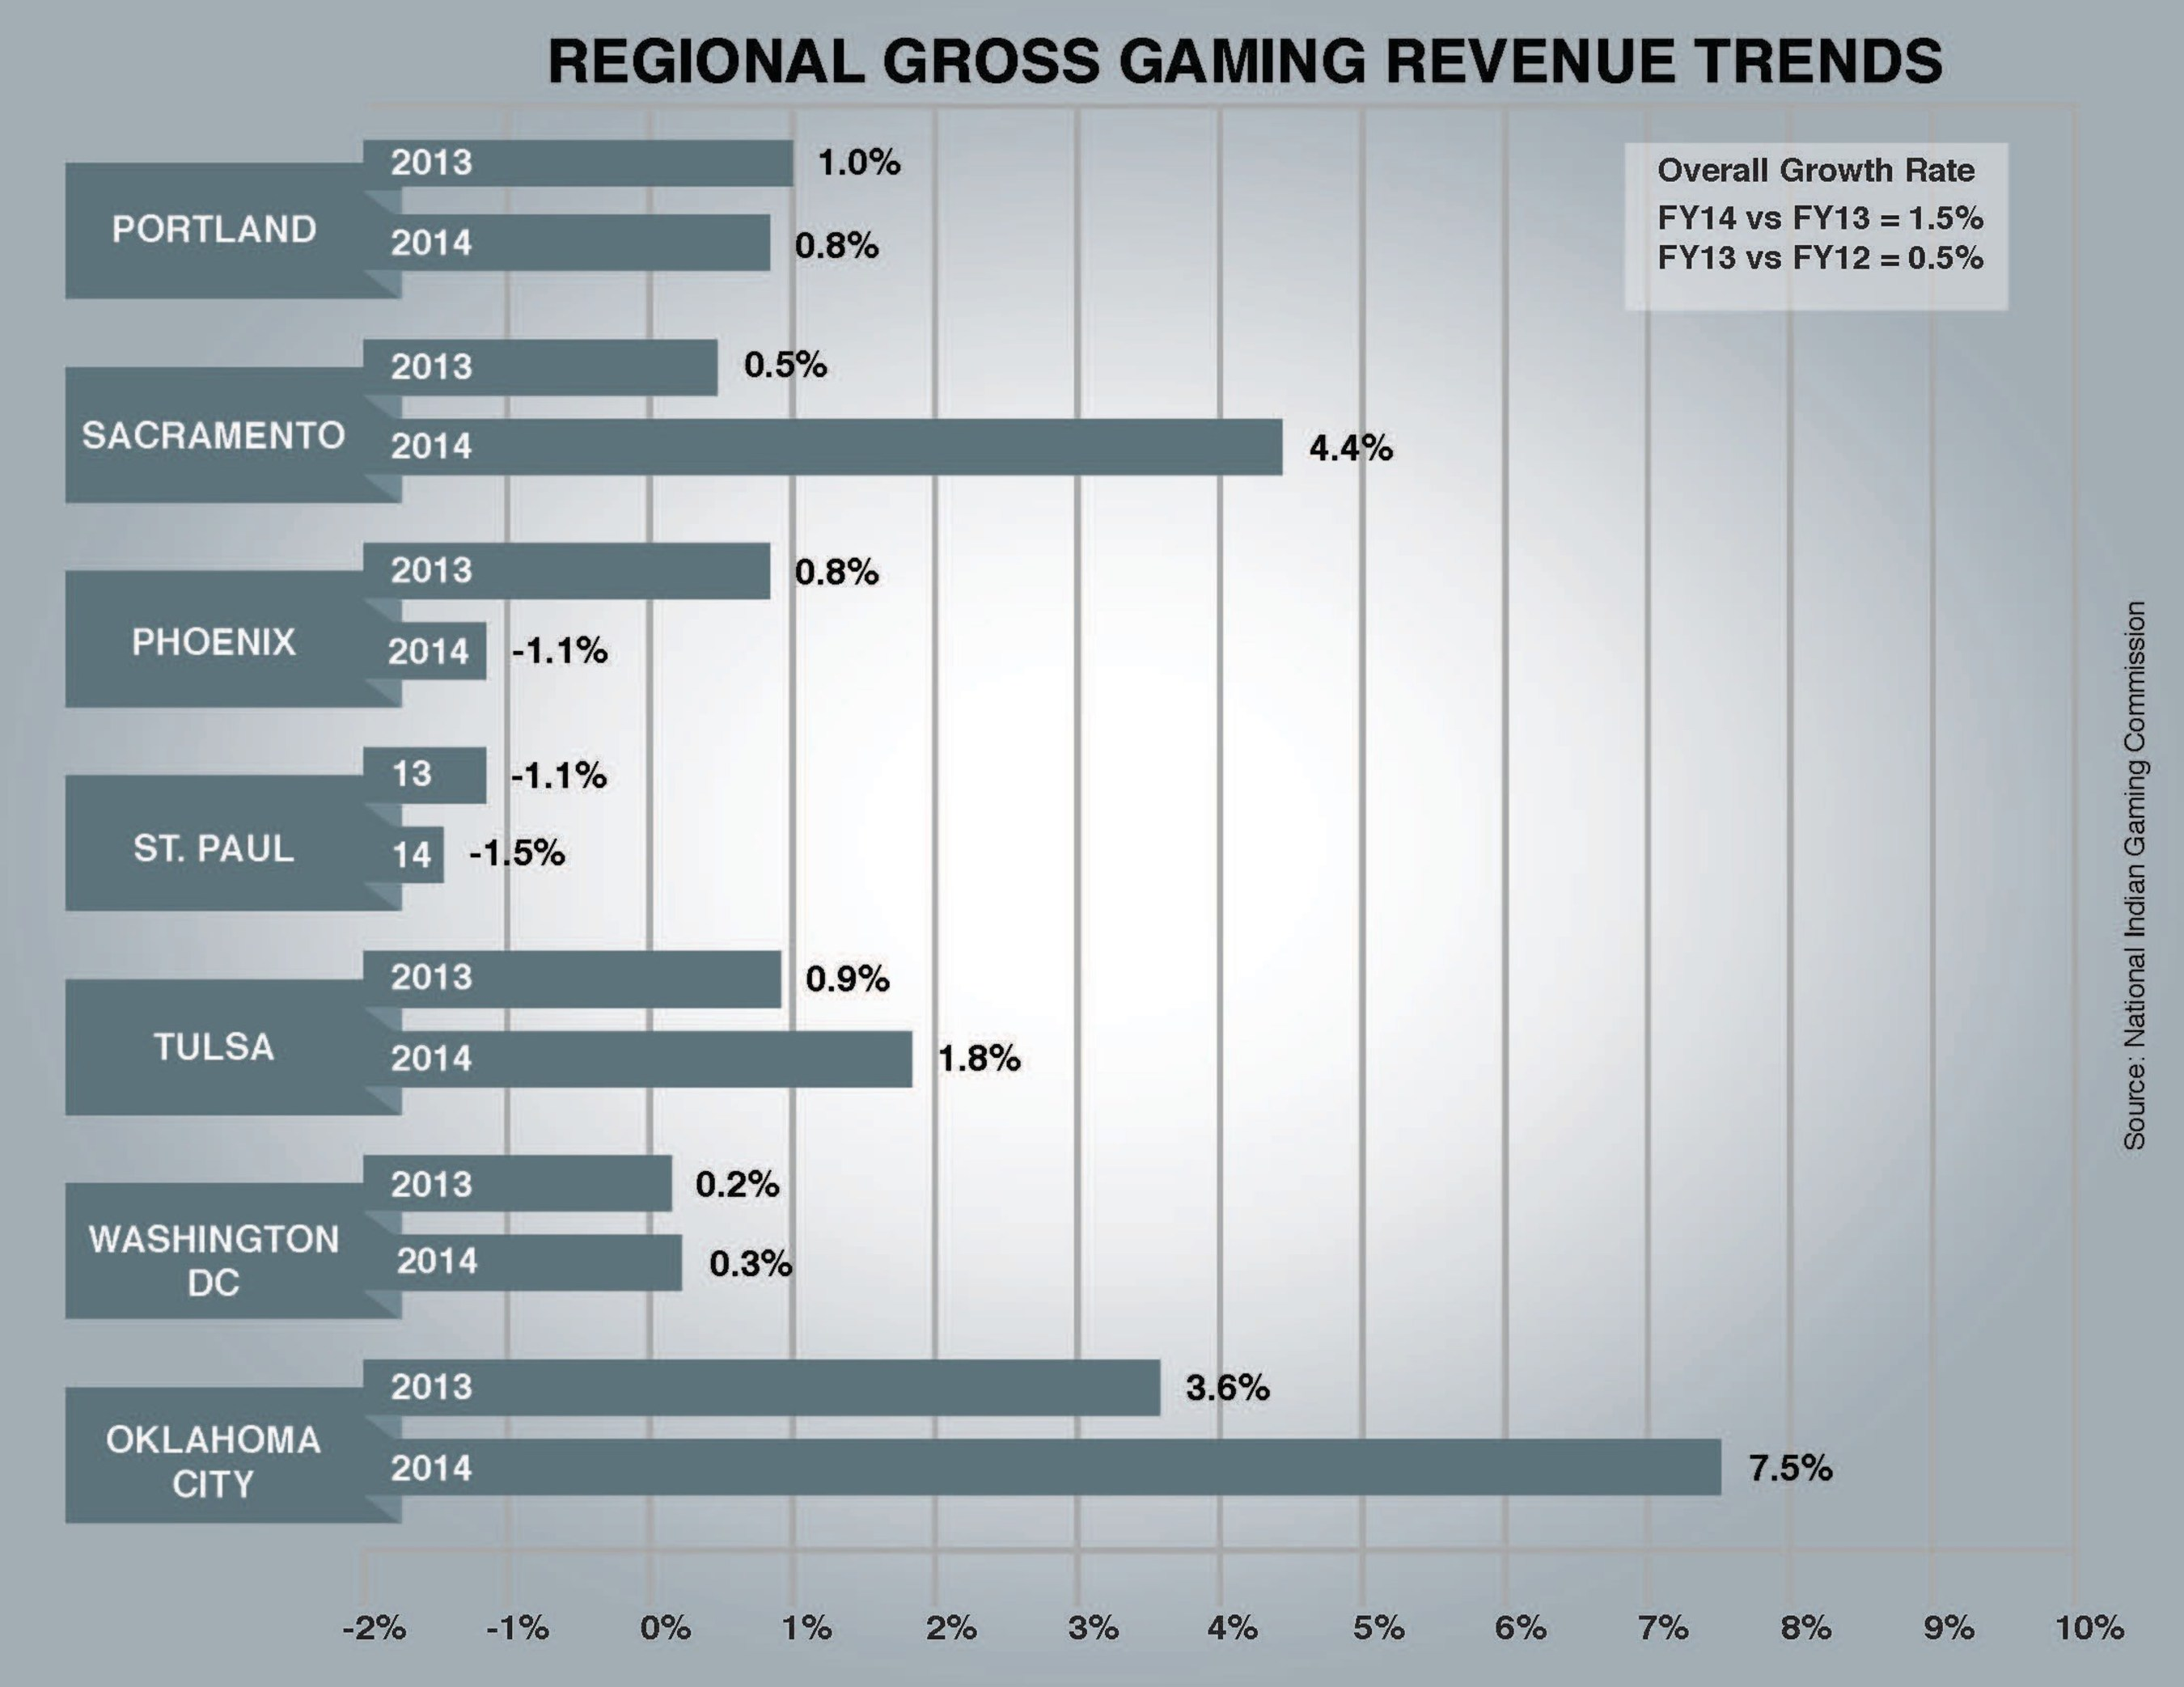 Indian gaming gross gaming revenue growth rate by region. Source: National Indian Gaming Commission.